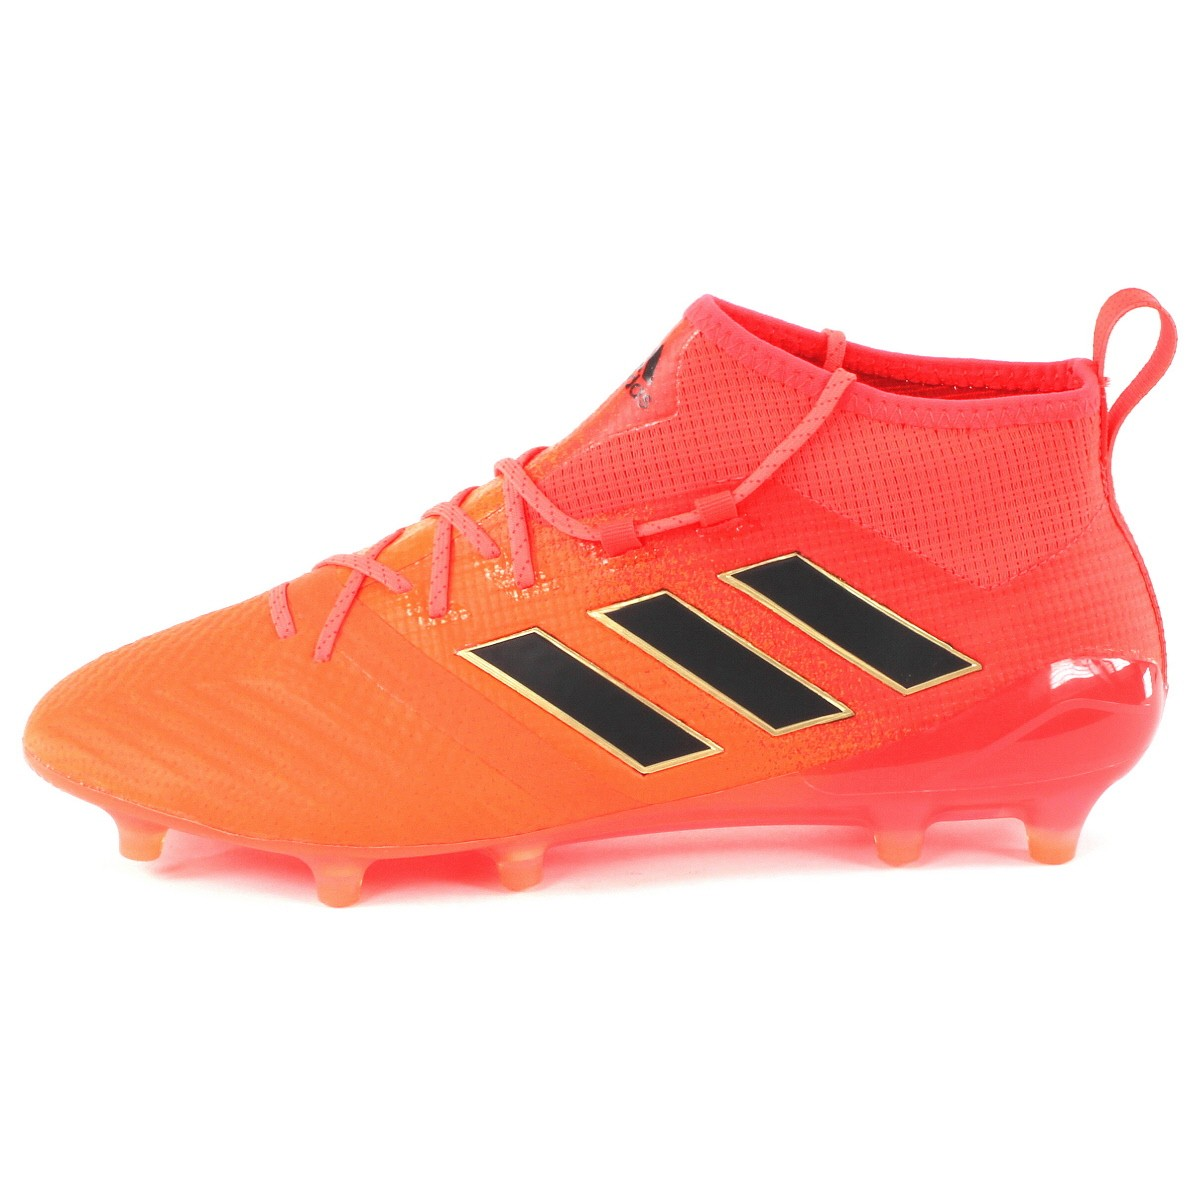 outlet online catch where to buy ADIDAS PERFORMANCE Chaussures de football Ace 17.1 FG - Homme ...